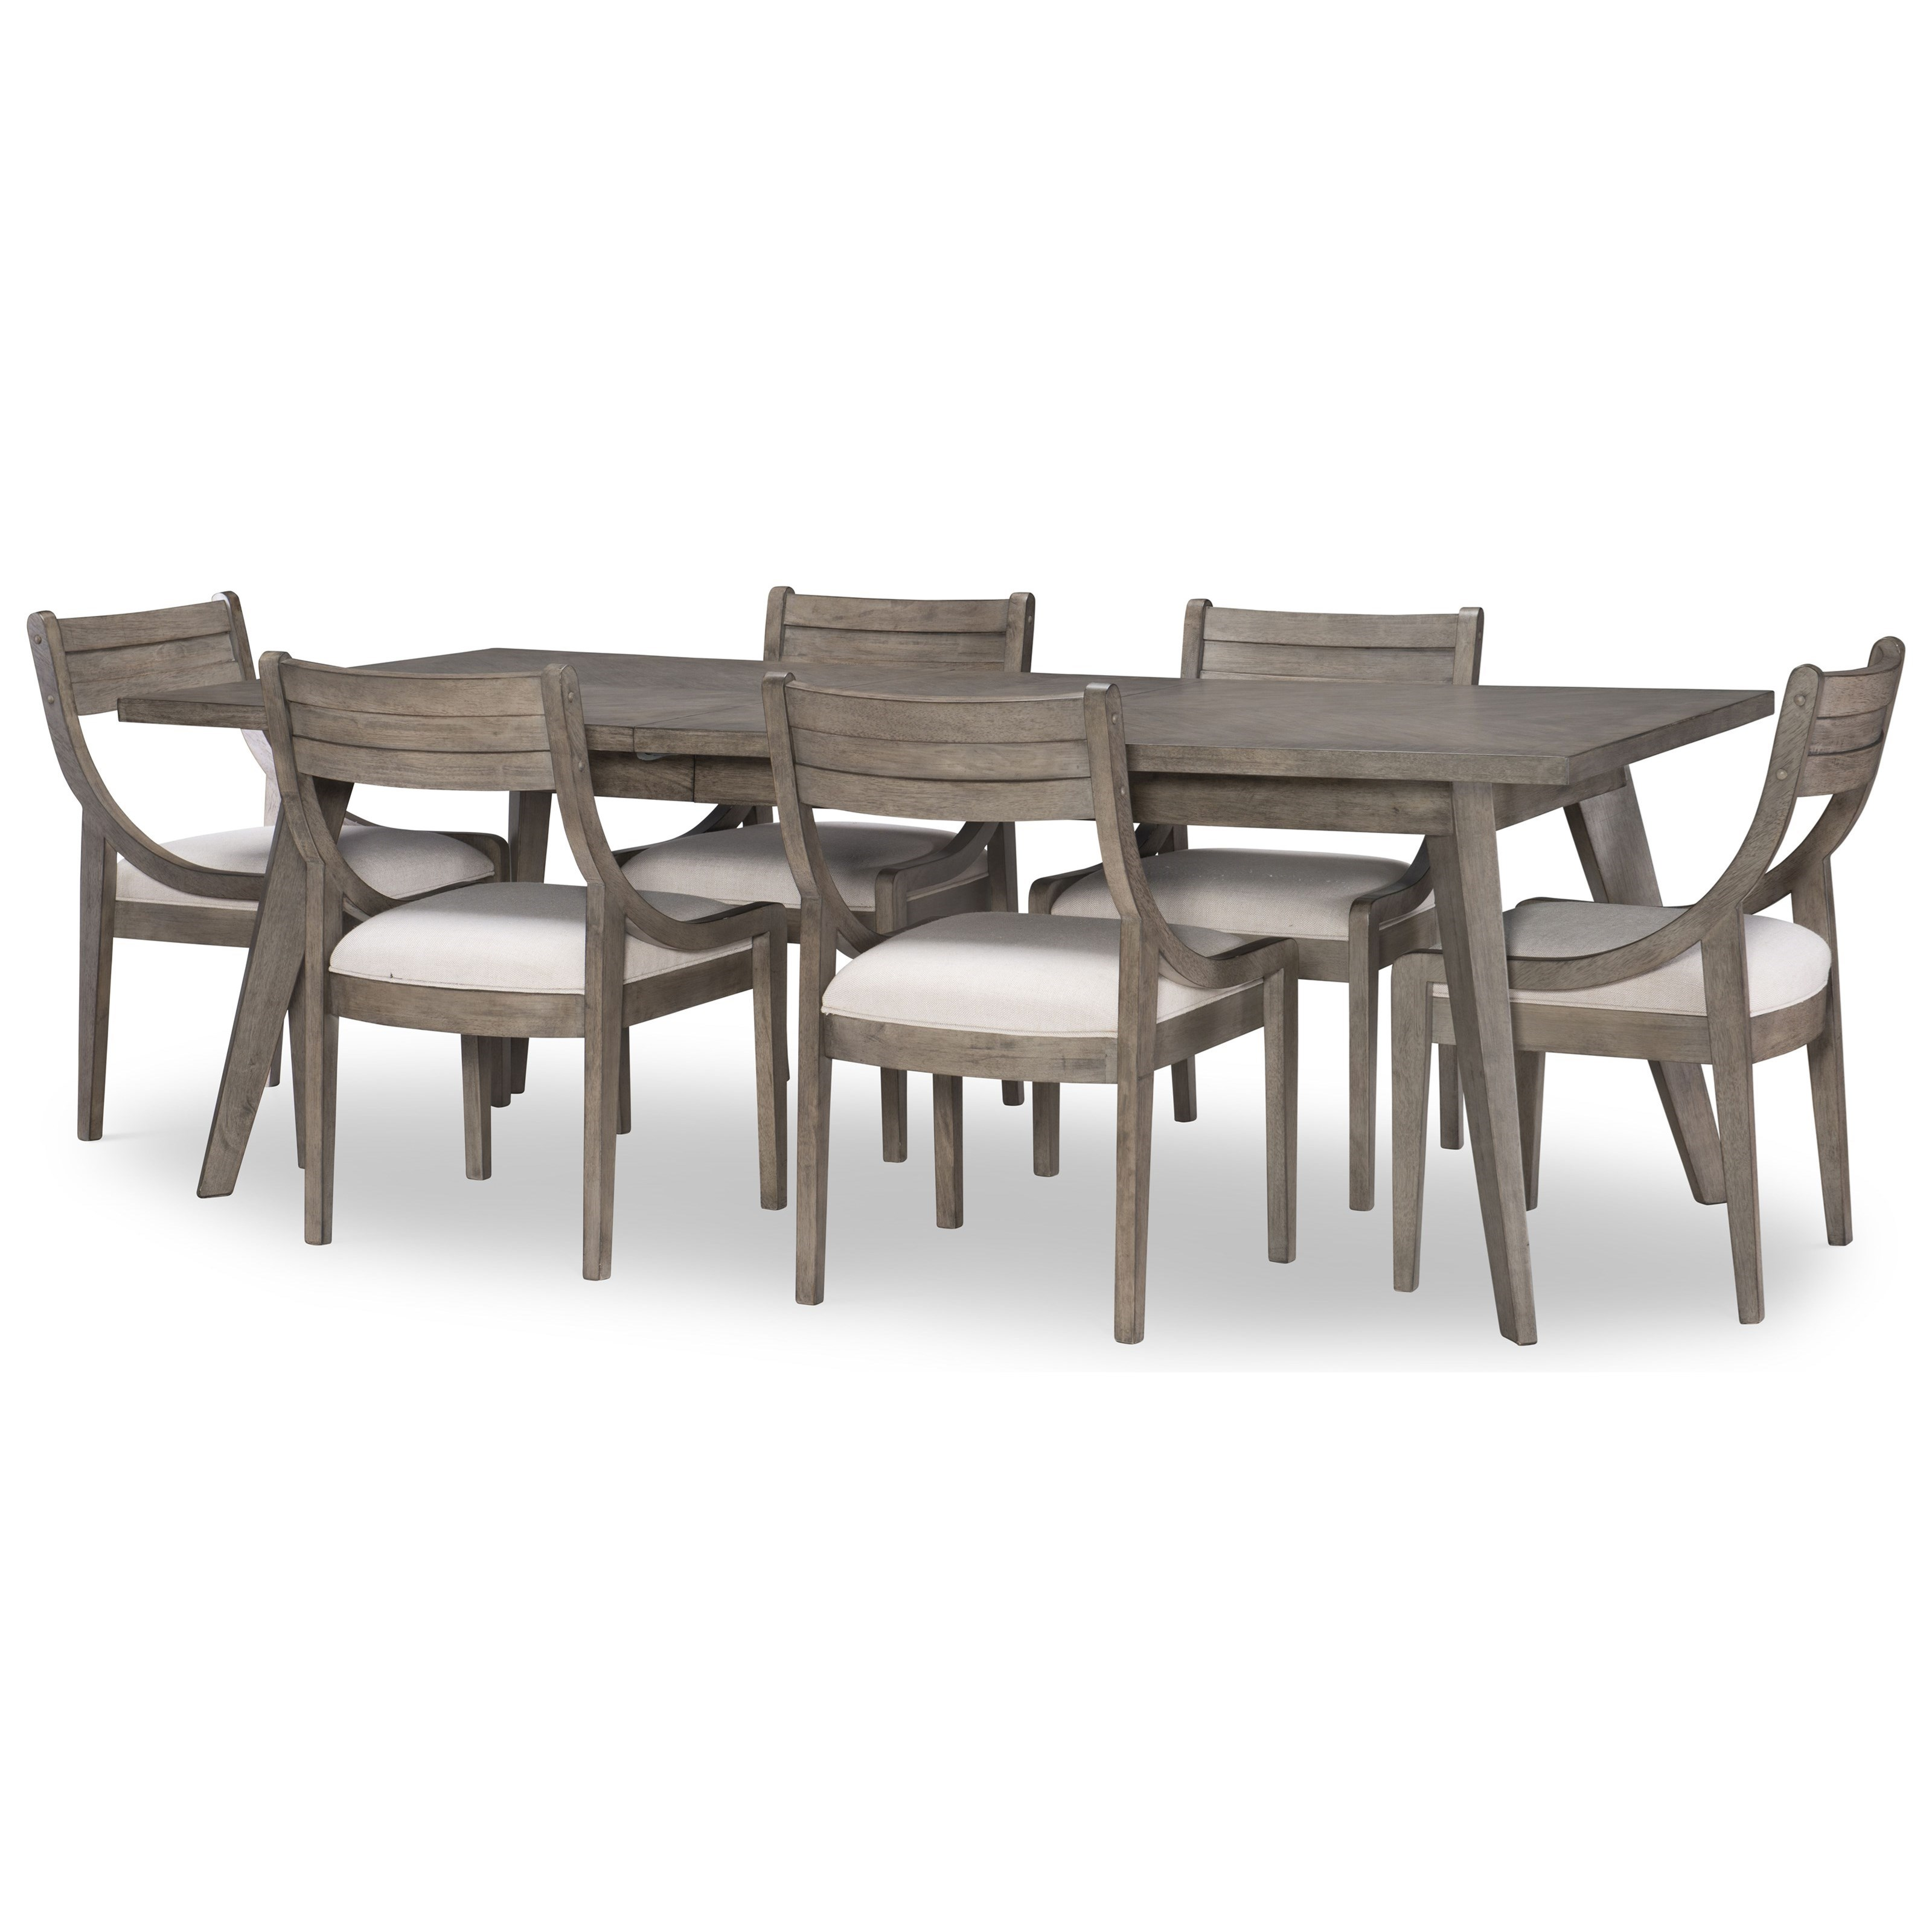 Greystone 7-Piece Rectangular Table and Chair Set by Legacy Classic at Johnny Janosik